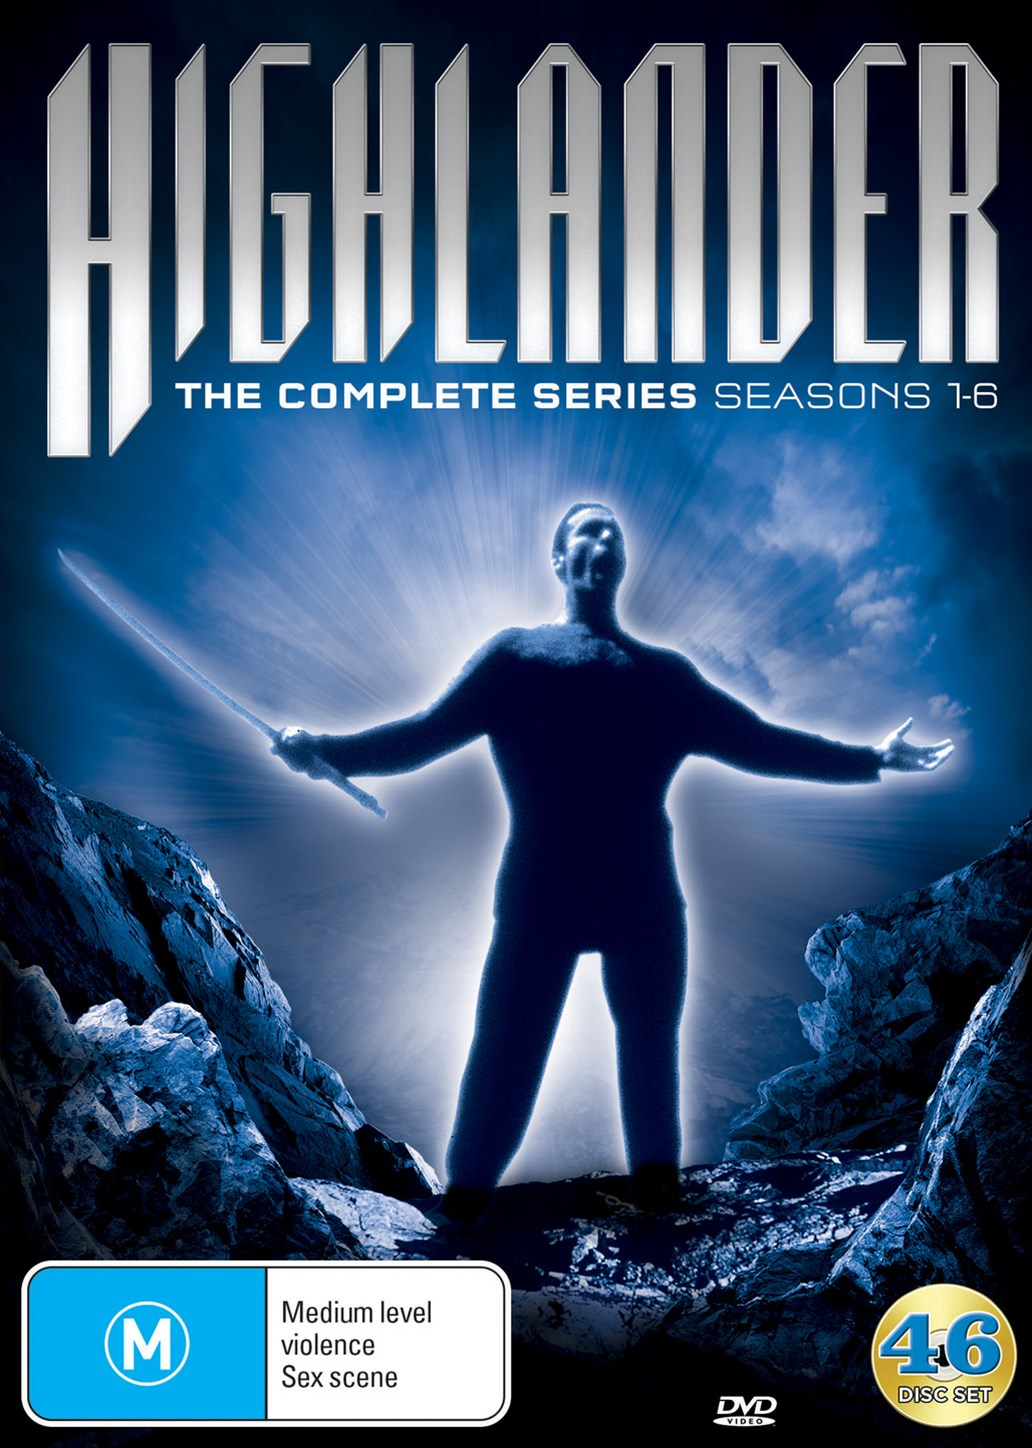 Highlander: The Complete Series